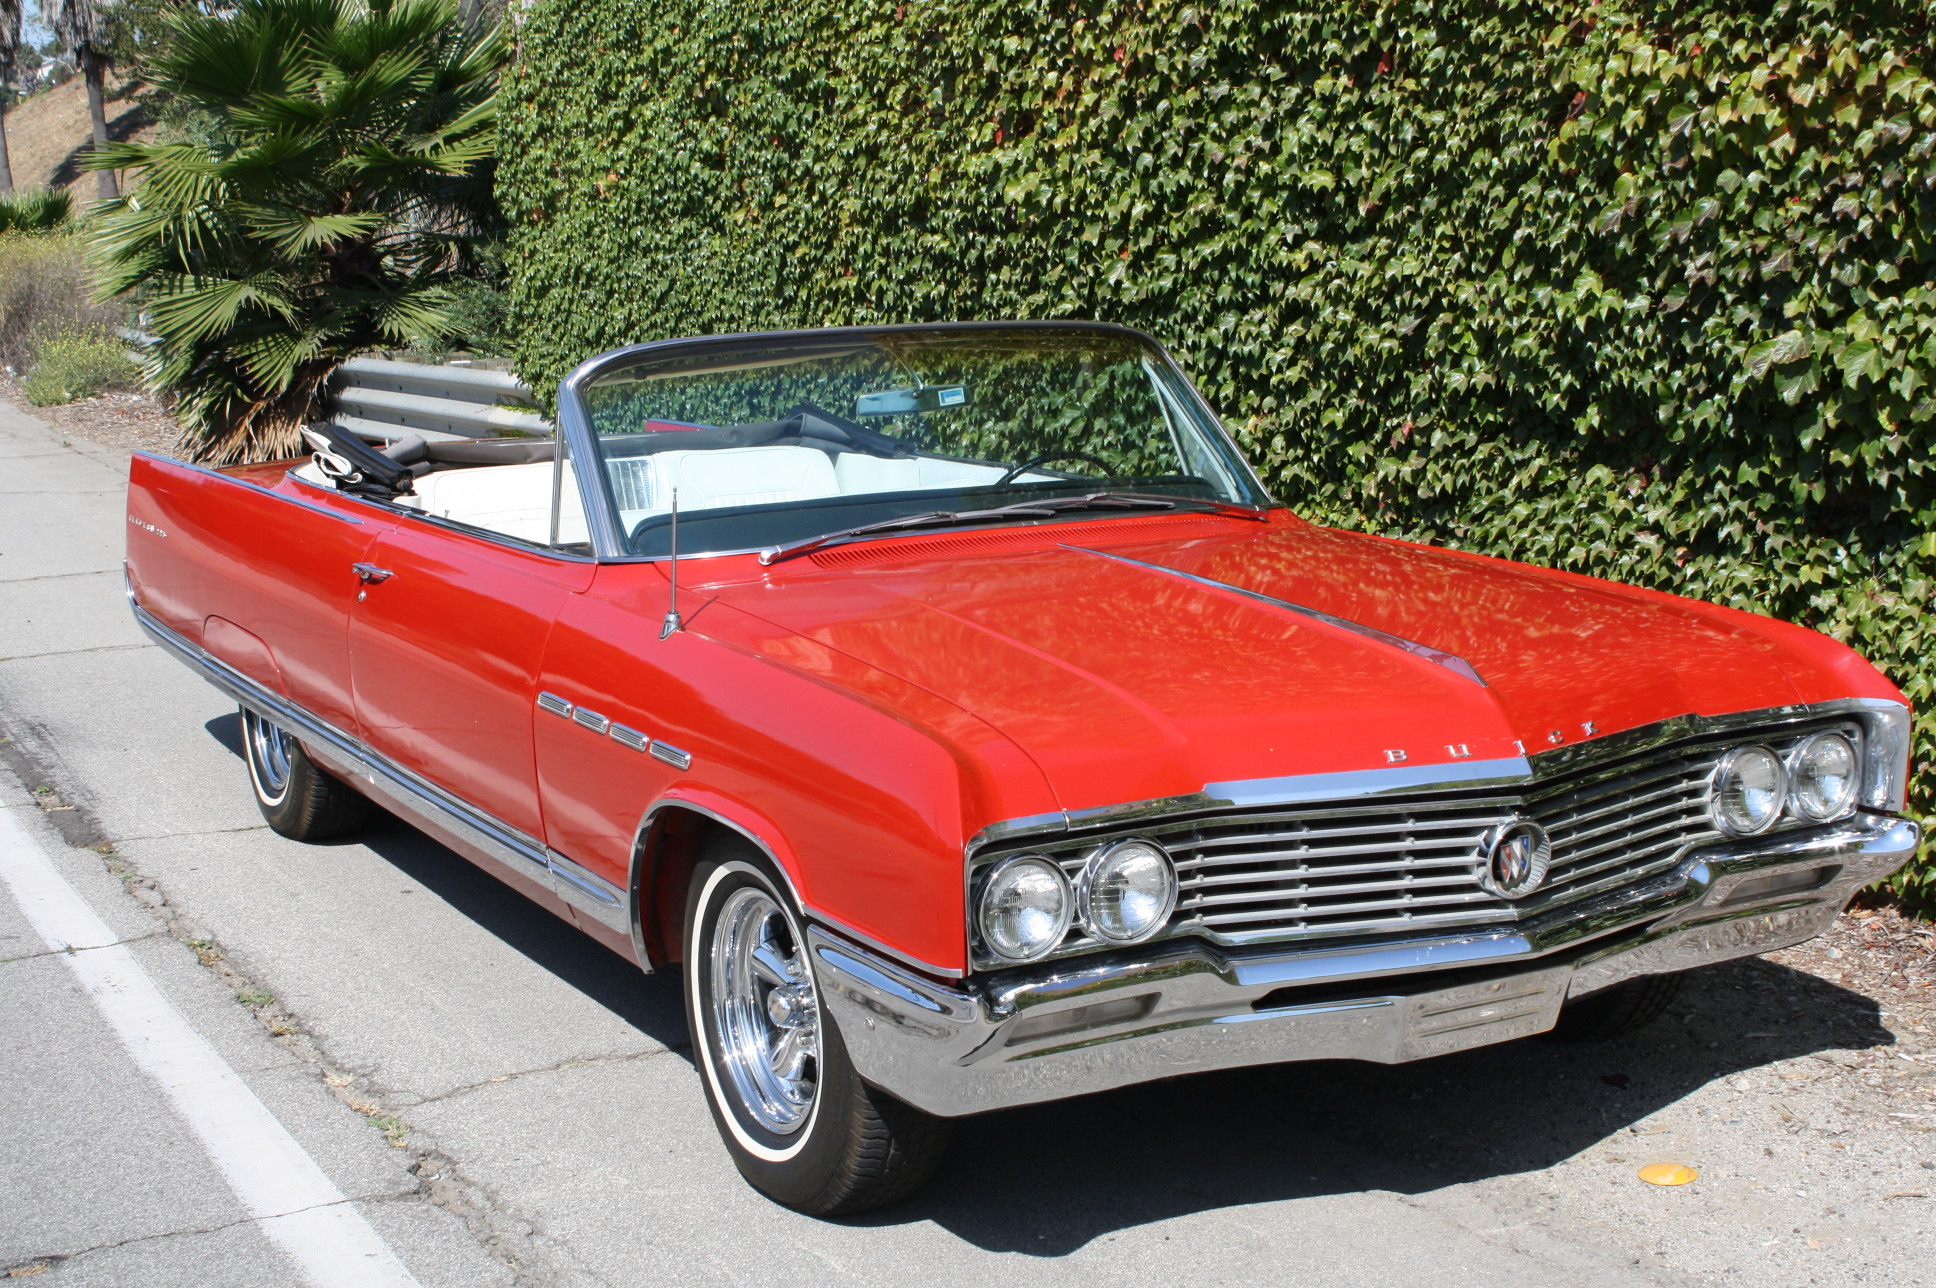 1964 Buick Electra 225 Convertible The Vault Classic Cars